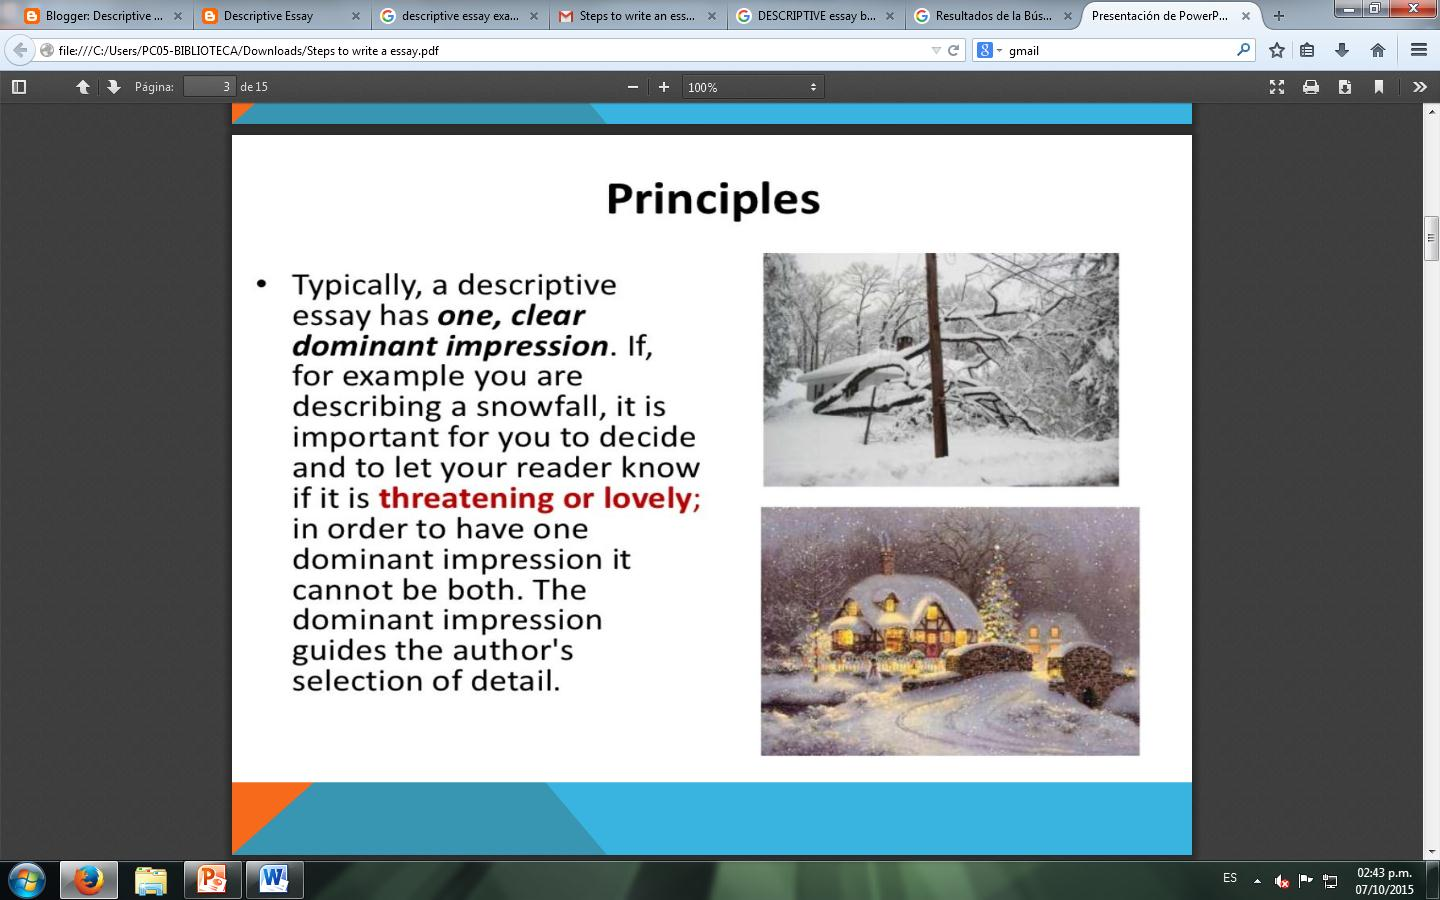 descriptive essay please review the power point presentation available at es slideshare net rachelelliottrigolino descriptive essay ppt 2012